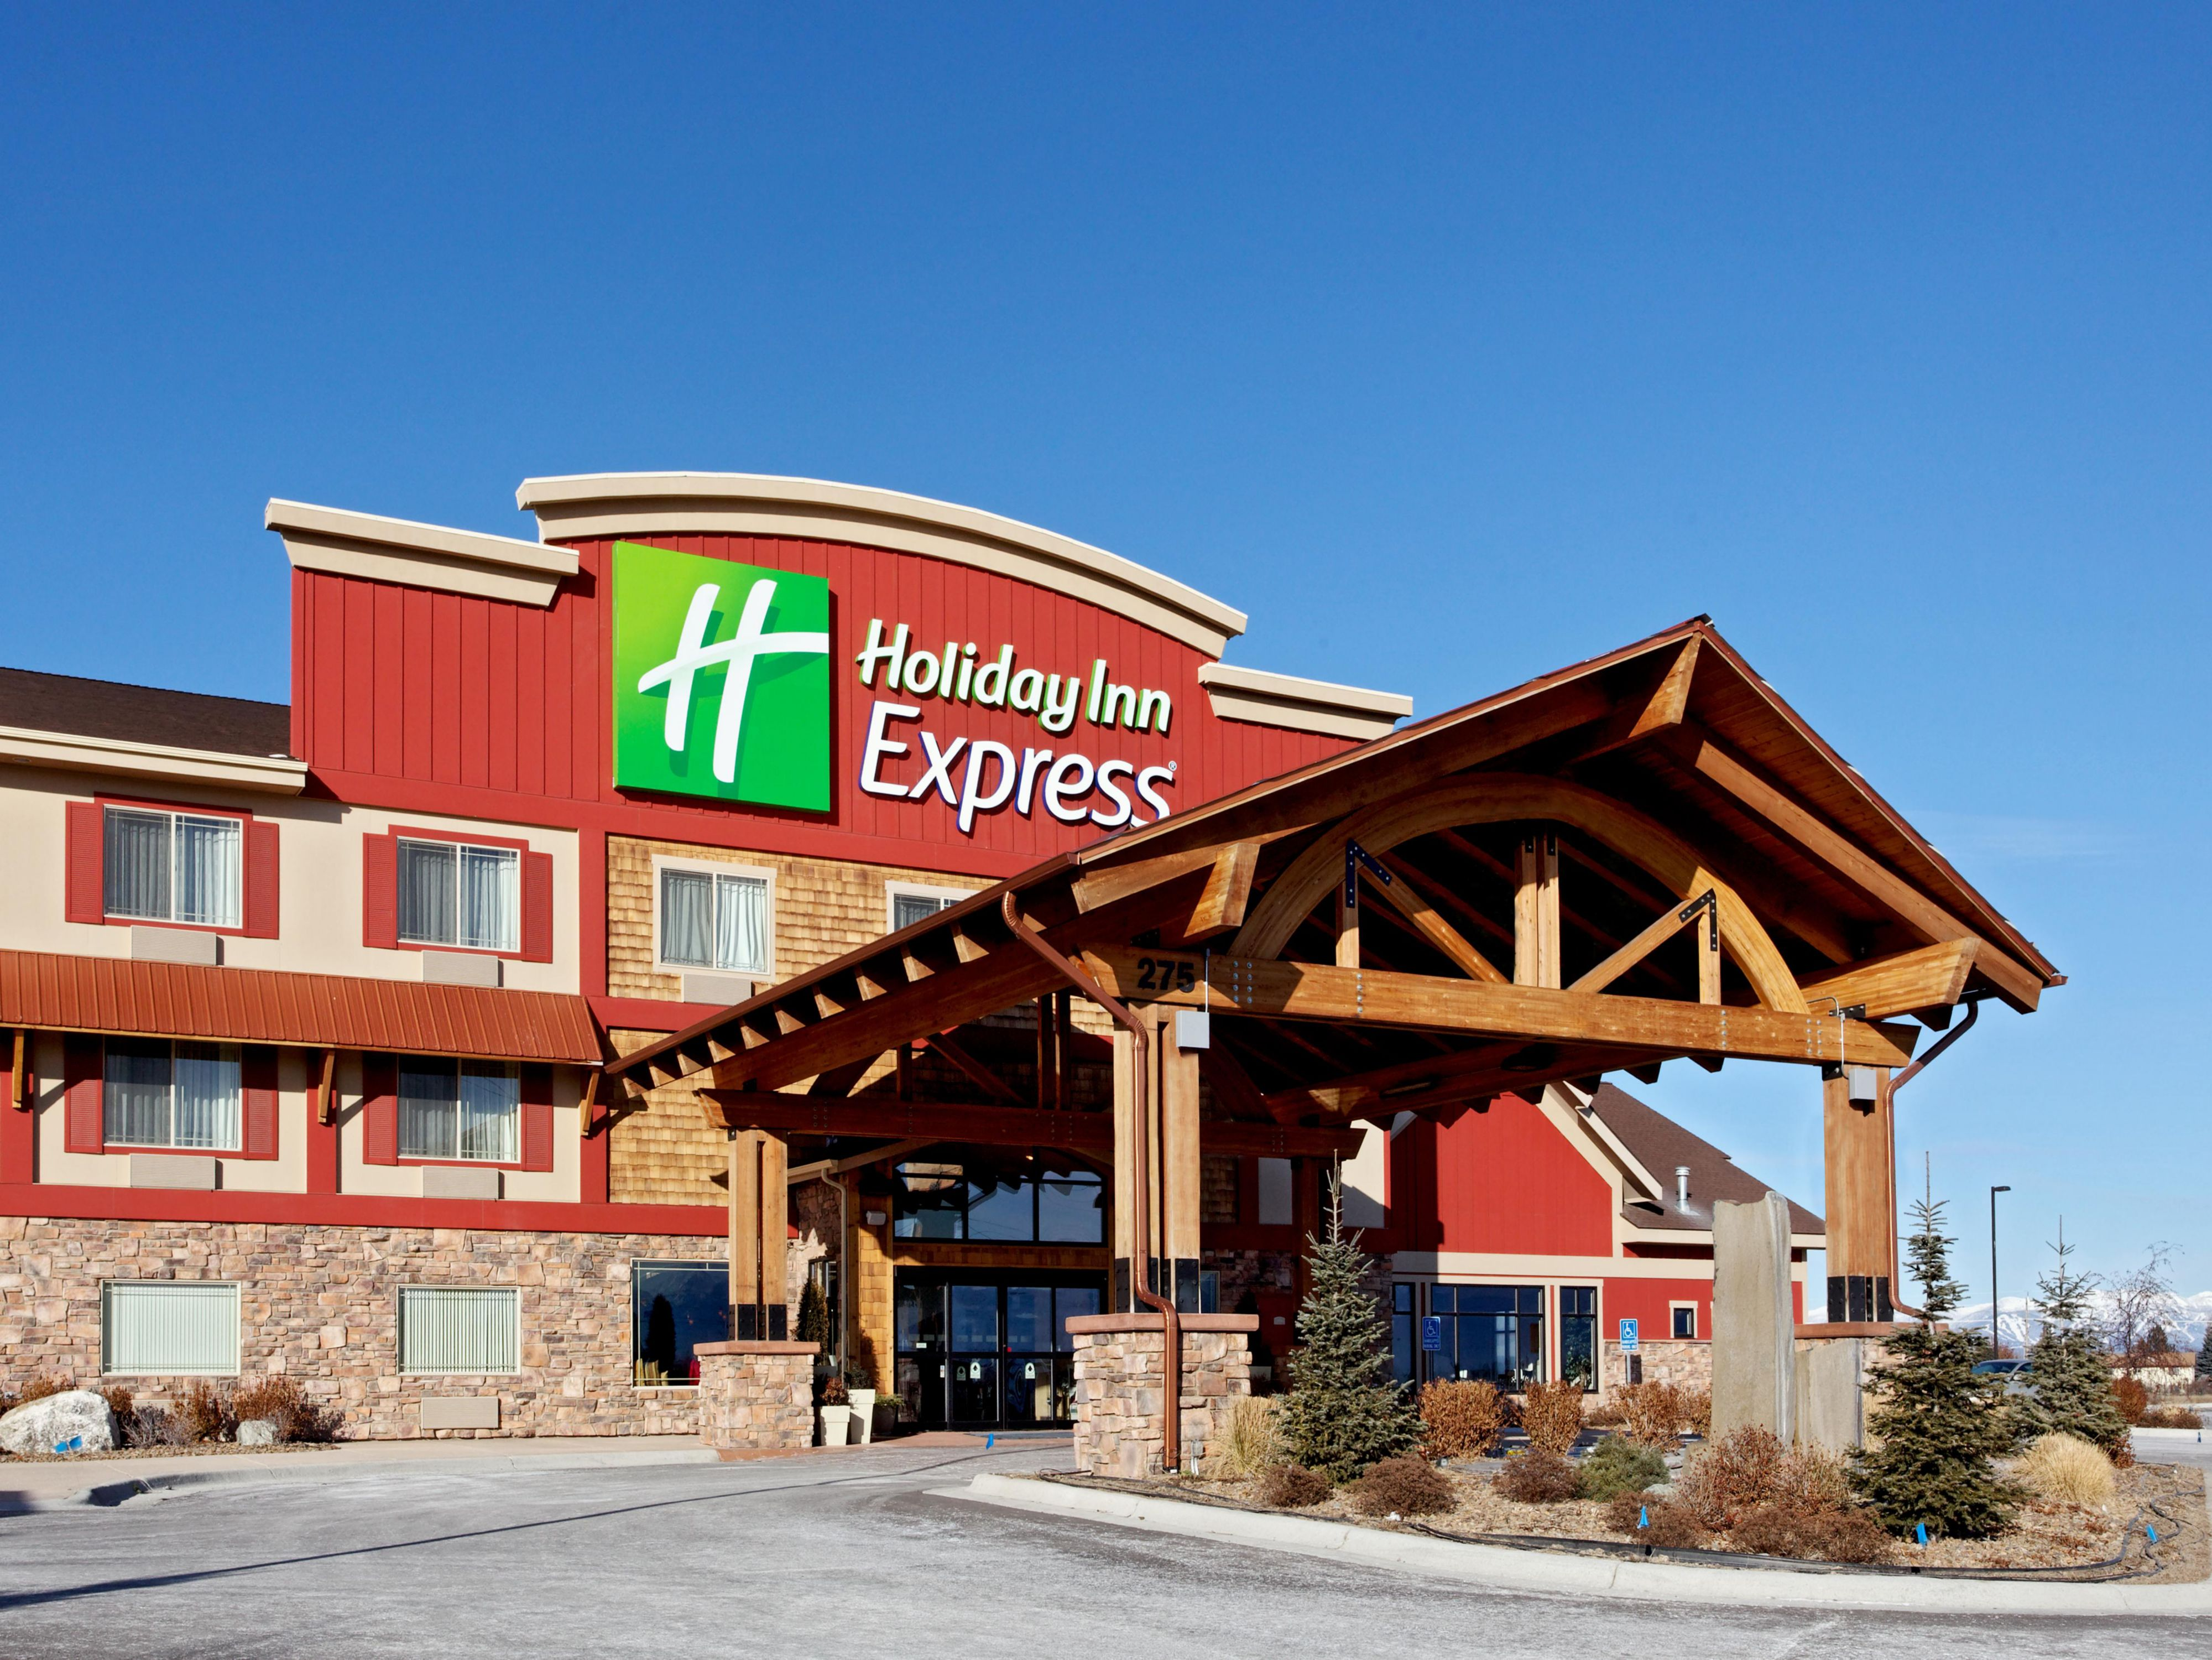 Holiday Inn Express Hotel Kalispell